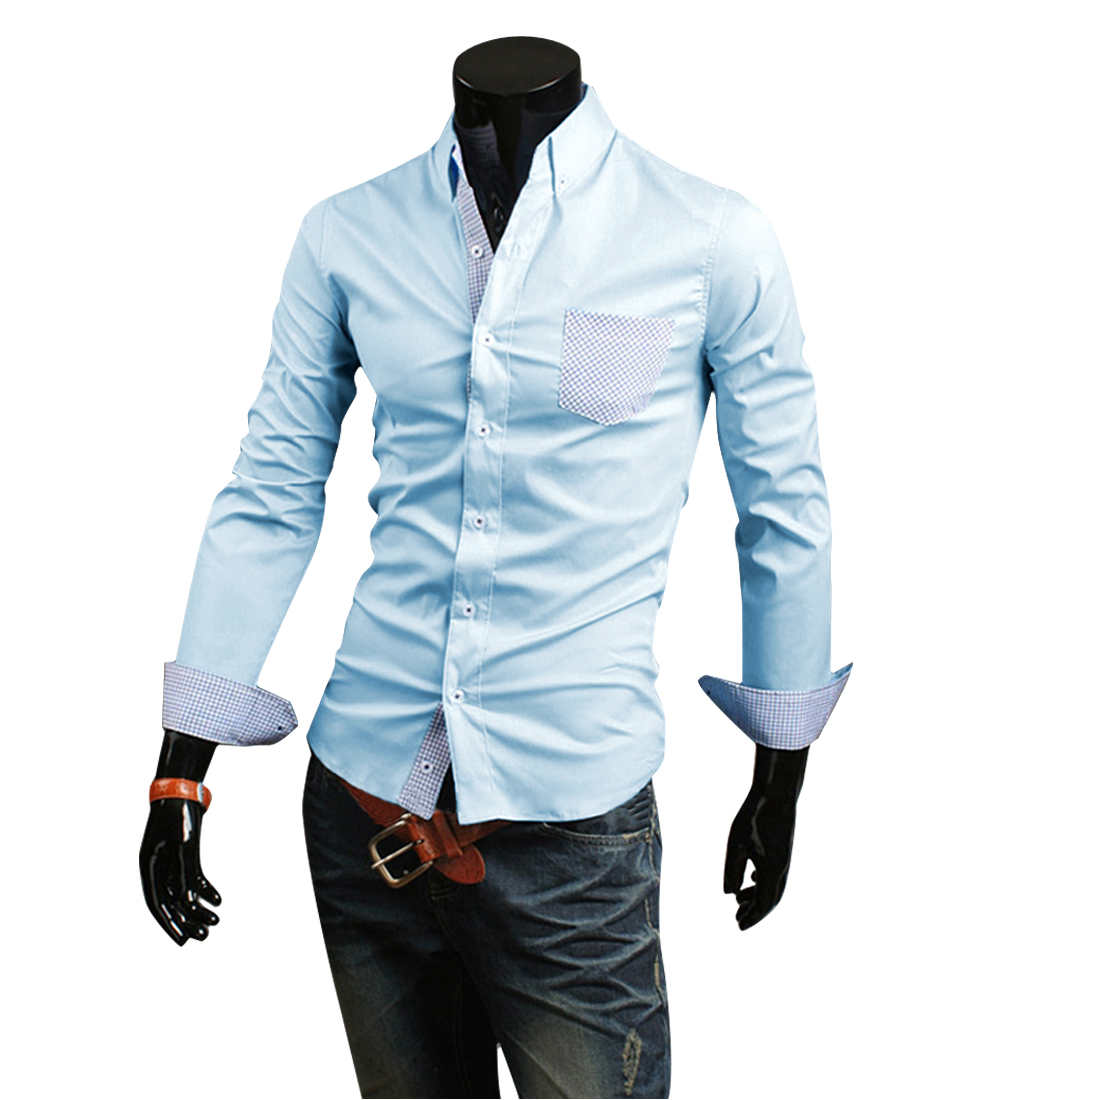 Men's Point Collar Contrast Color Stylish Long Sleeves Light Blue Shirt M